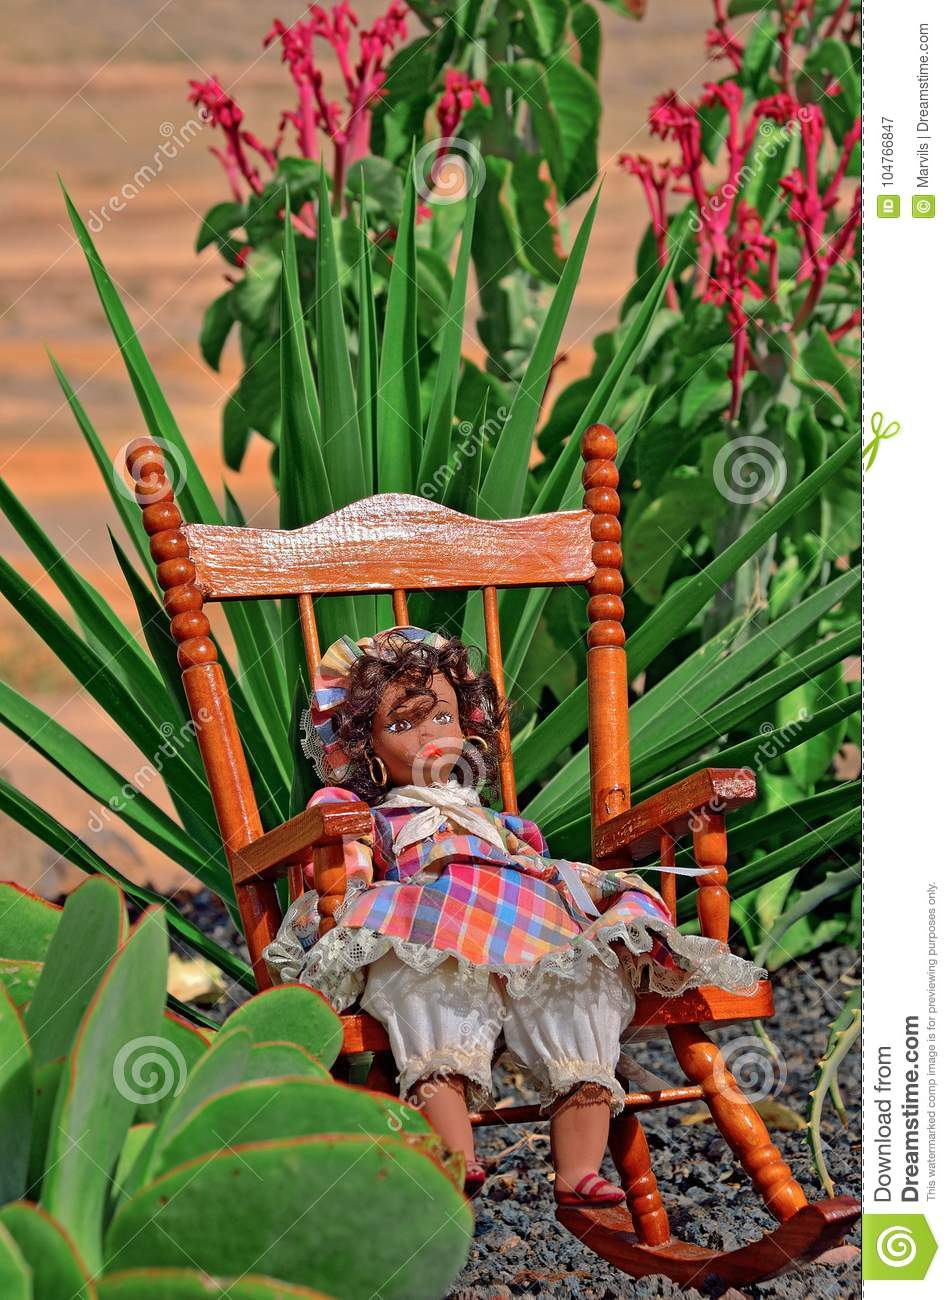 doll in dress relax in the chait at the garden near plant and flower - The Doll In The Garden